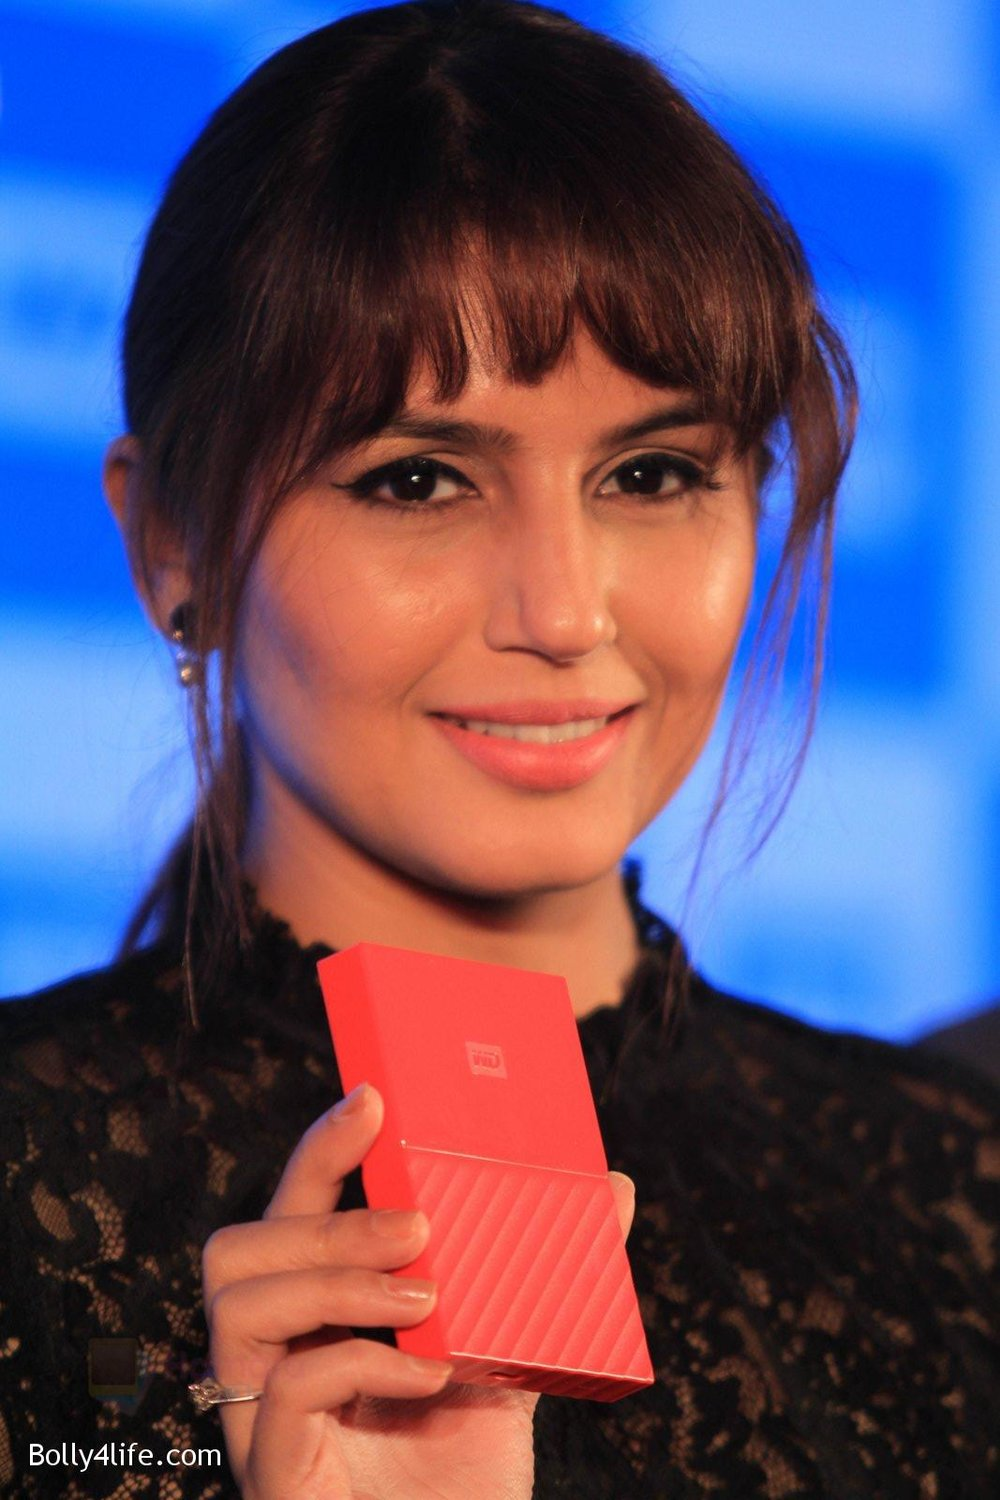 Huma-Qureshi-at-WD-launch-in-Delhi-on-19th-Oct-2016-21.jpg